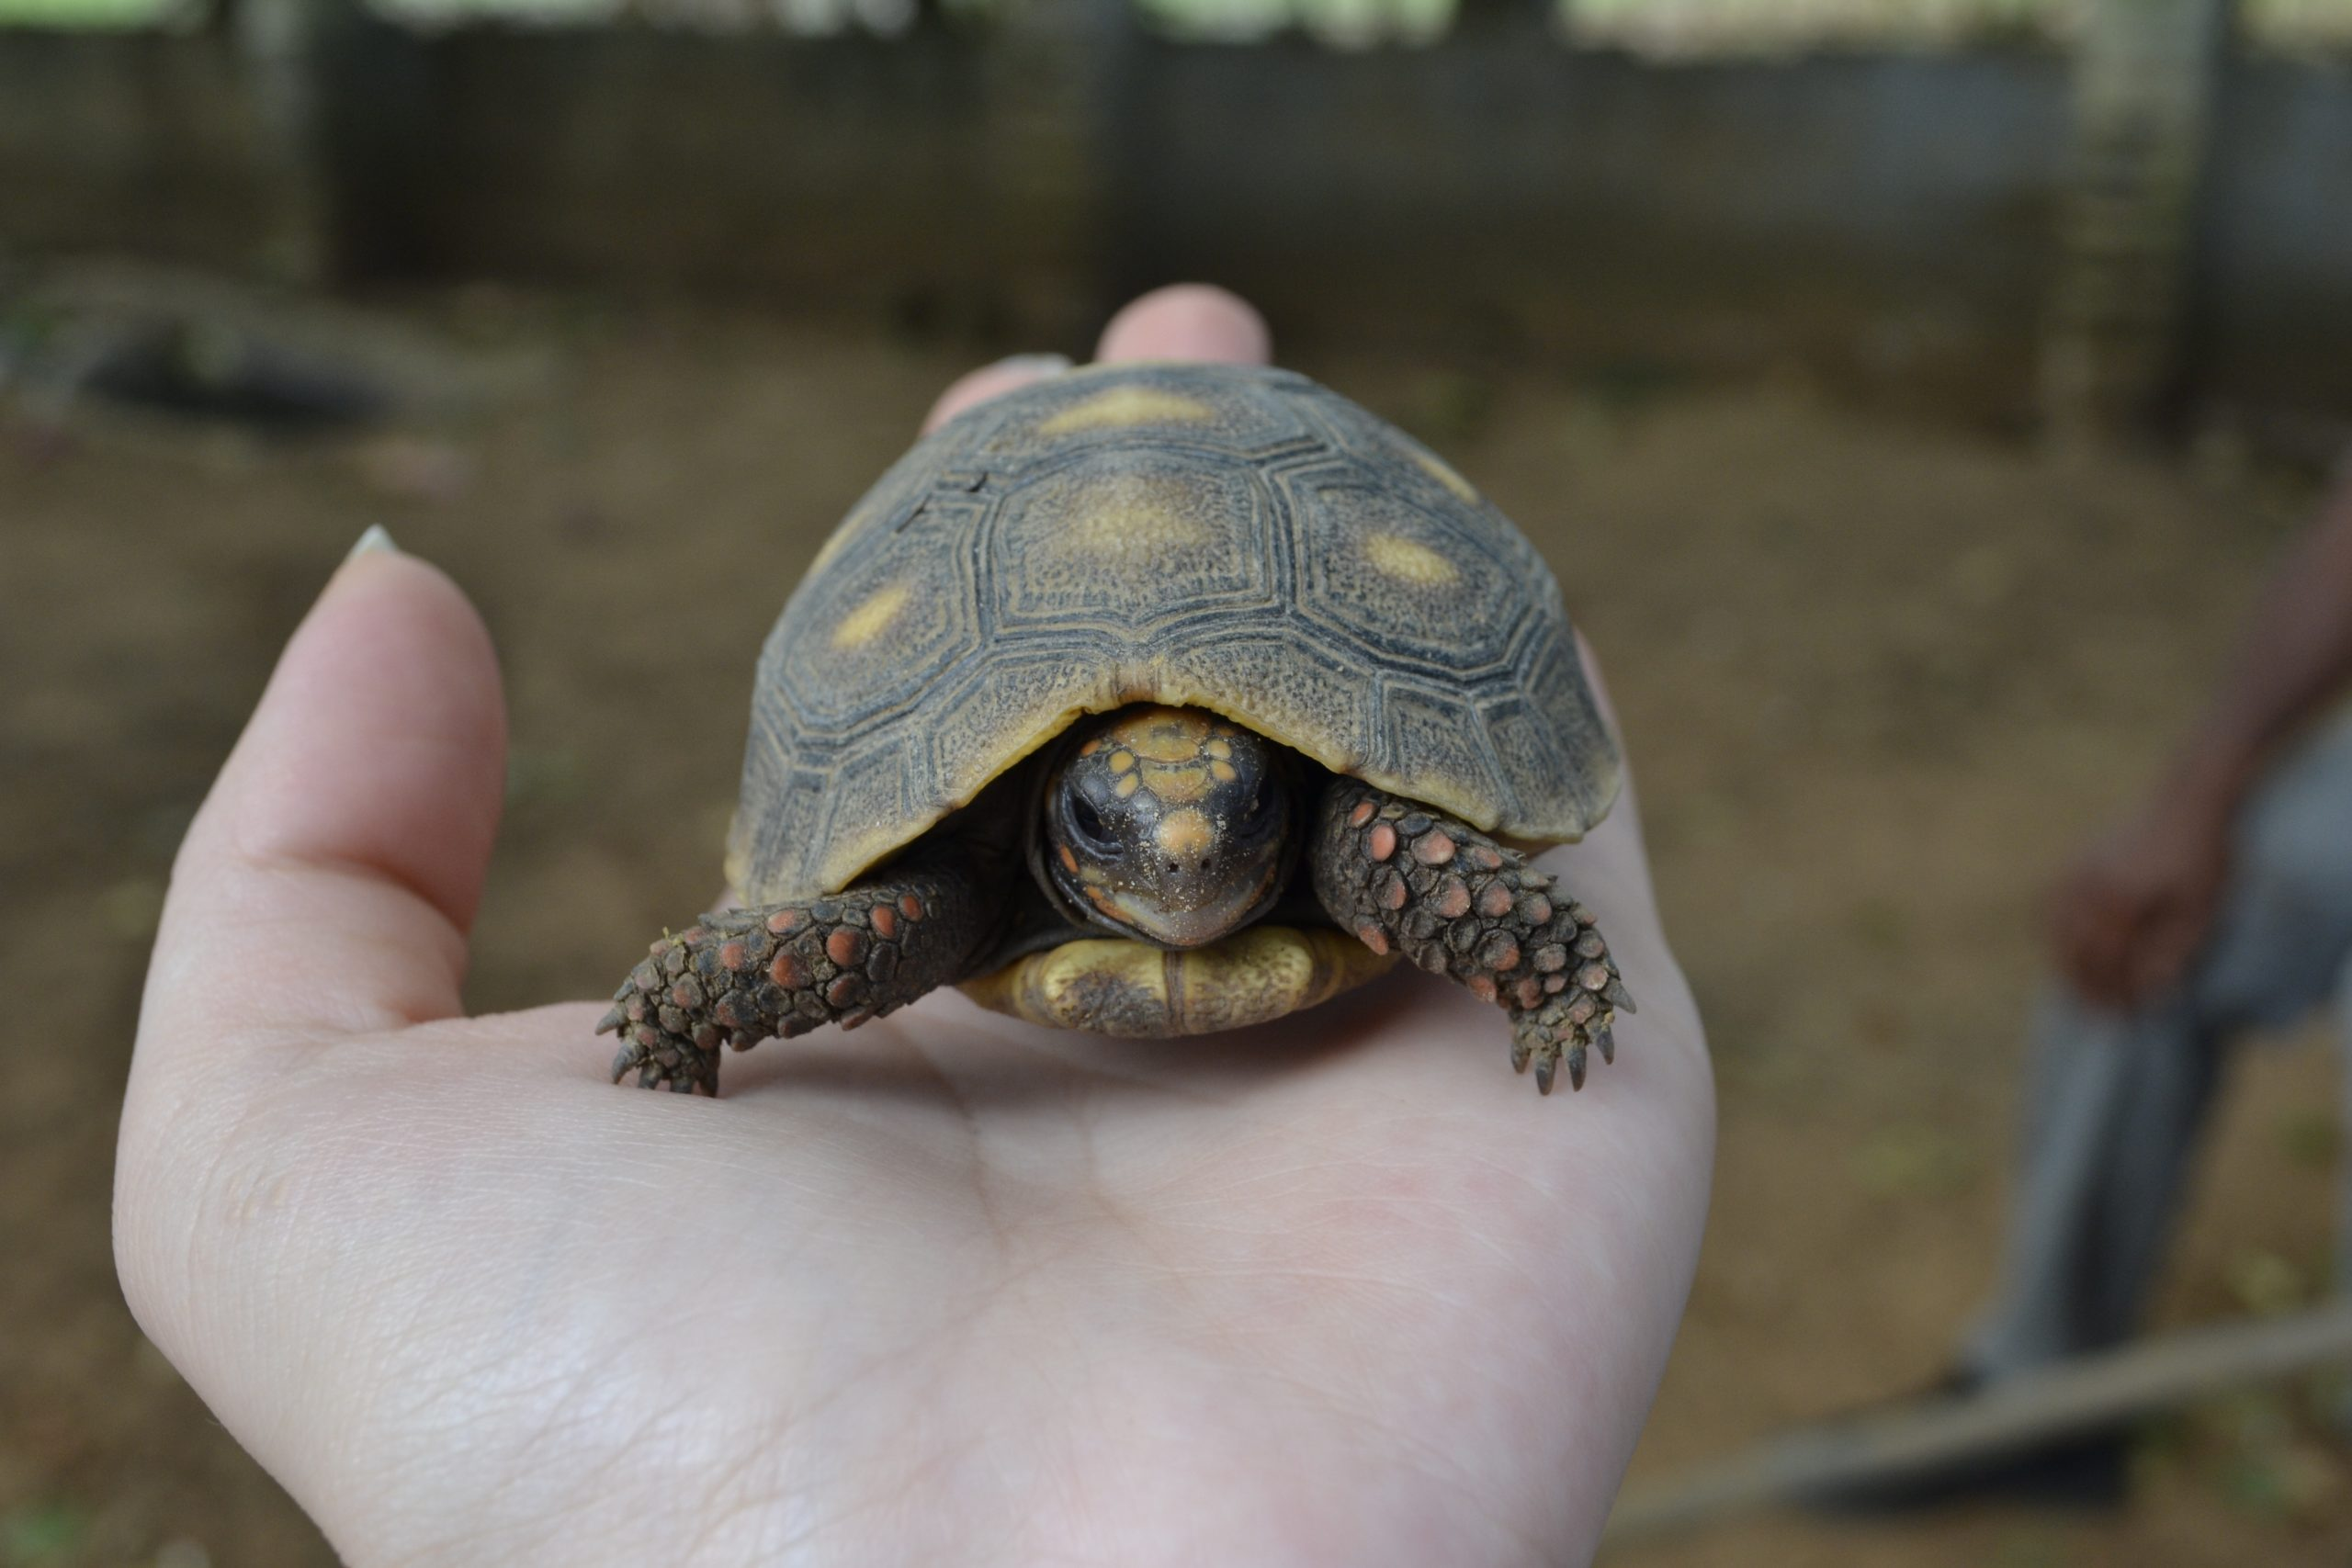 Close-Up Of Human Hand Holding A Turtle